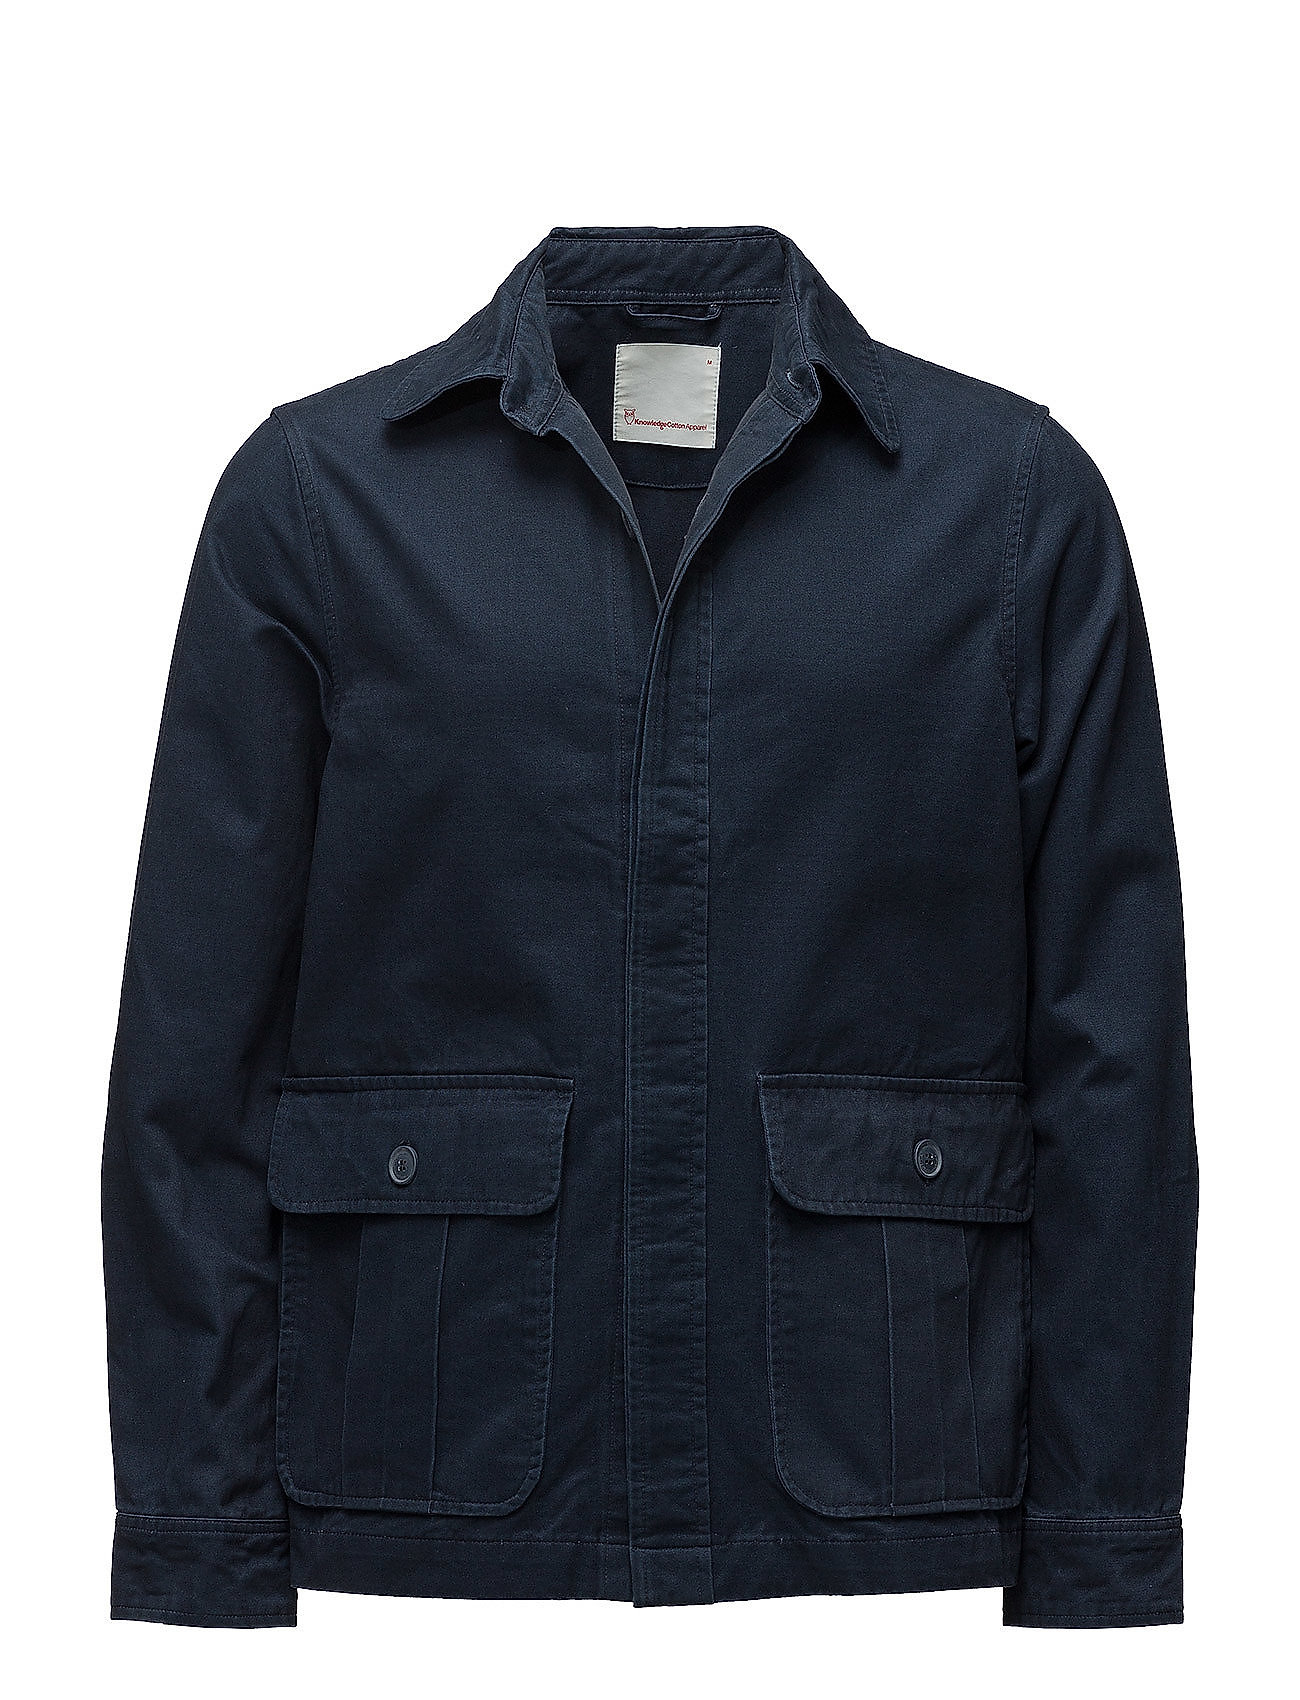 Knowledge Cotton Apparel Twill short jacket - TOTAL ECLIPSE